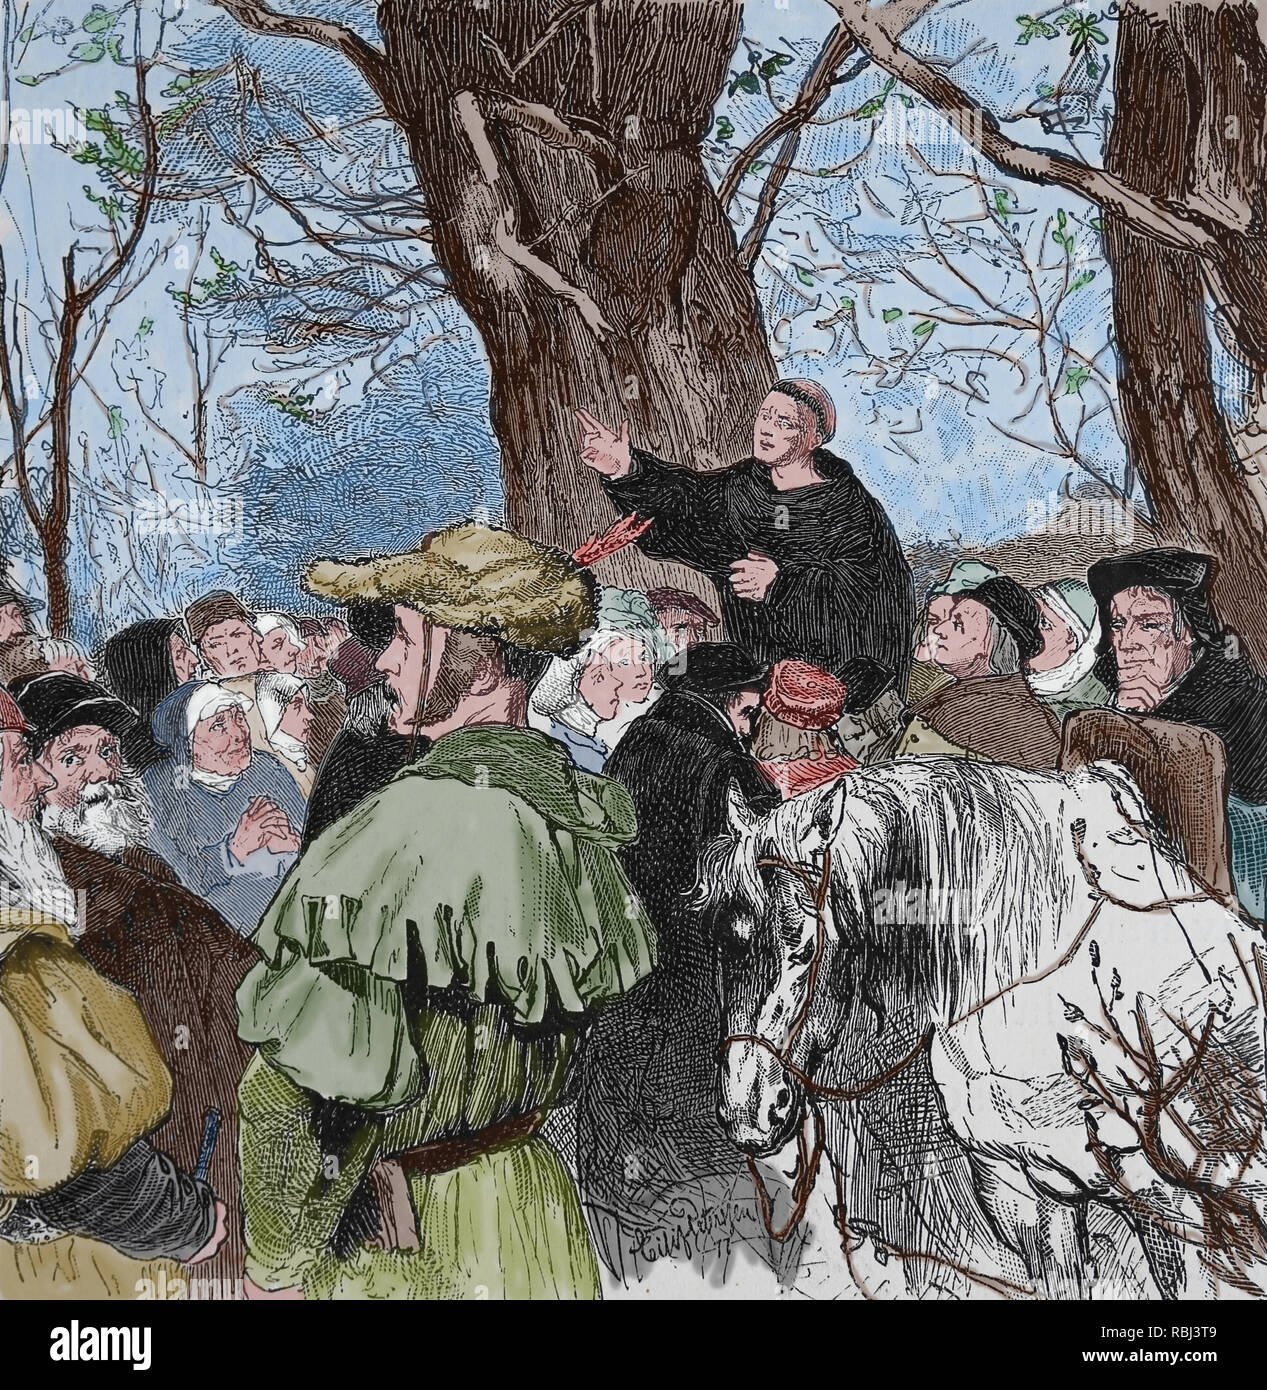 German reformer Martin Luther (1483-1546) preaching to the crowd in Mora. Germania, 1882. - Stock Image